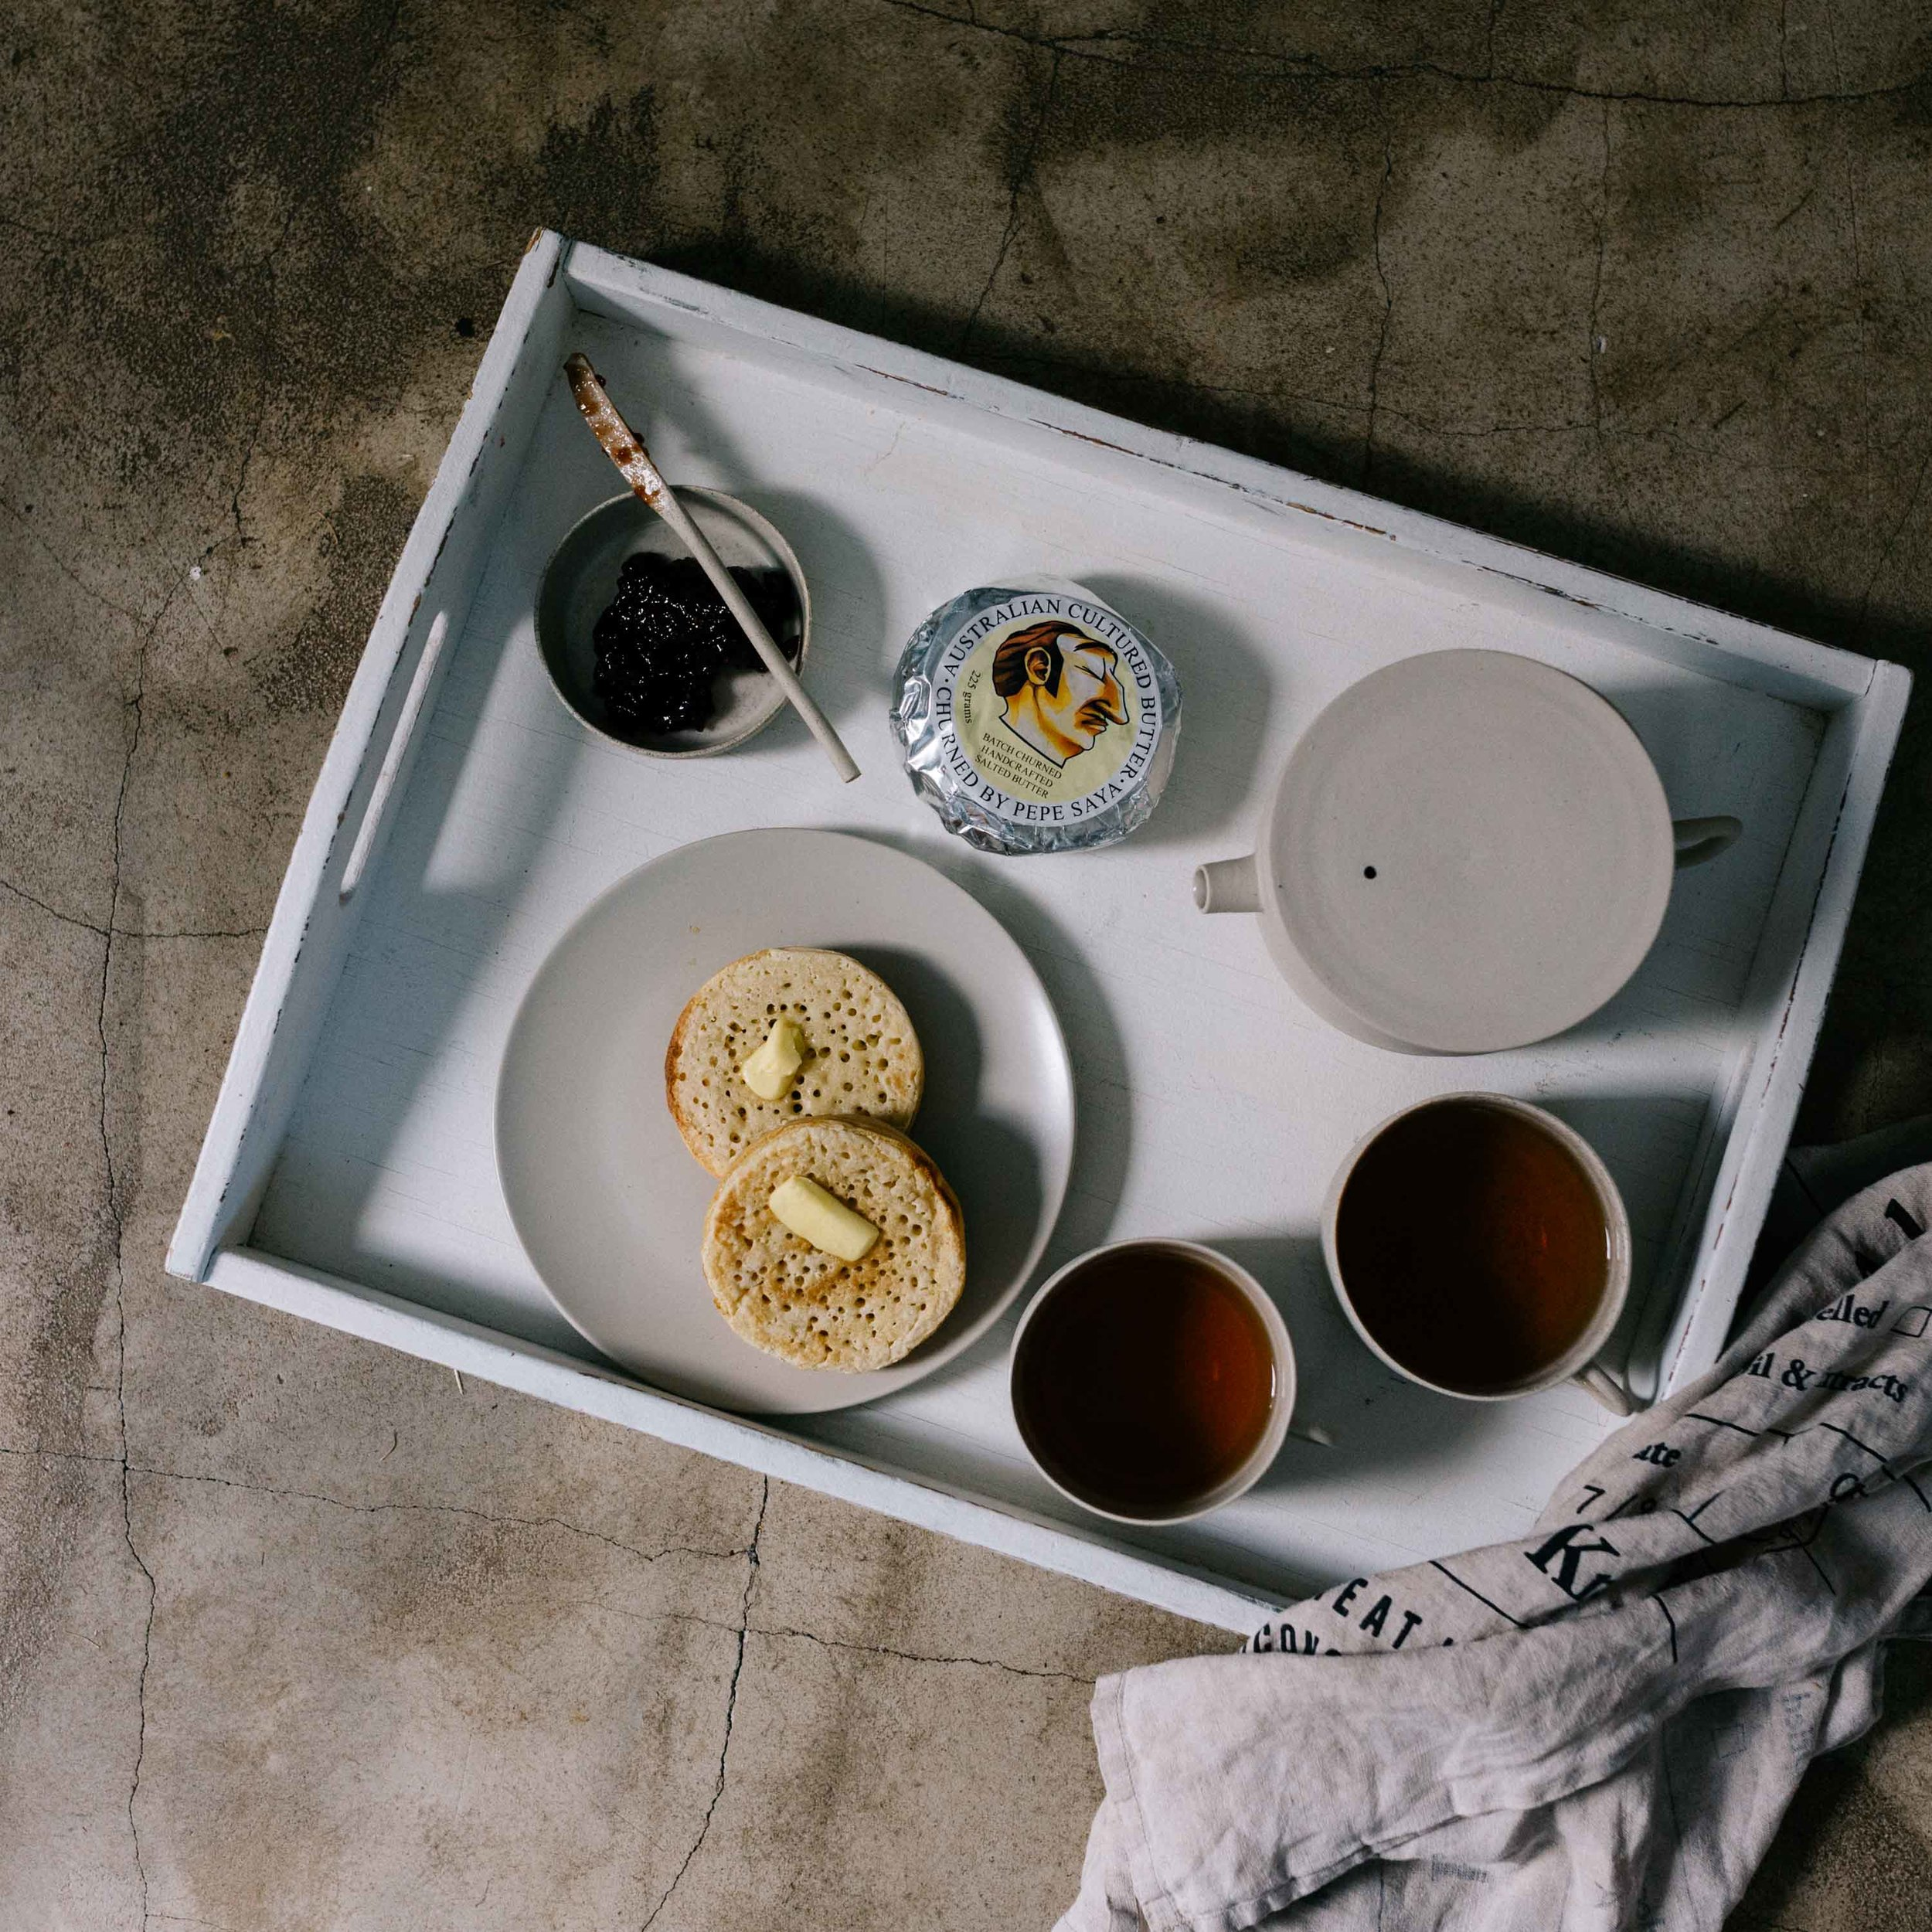 Melbourne lifestyle photographer, Marnie Hawson, for The Downtime Agenda